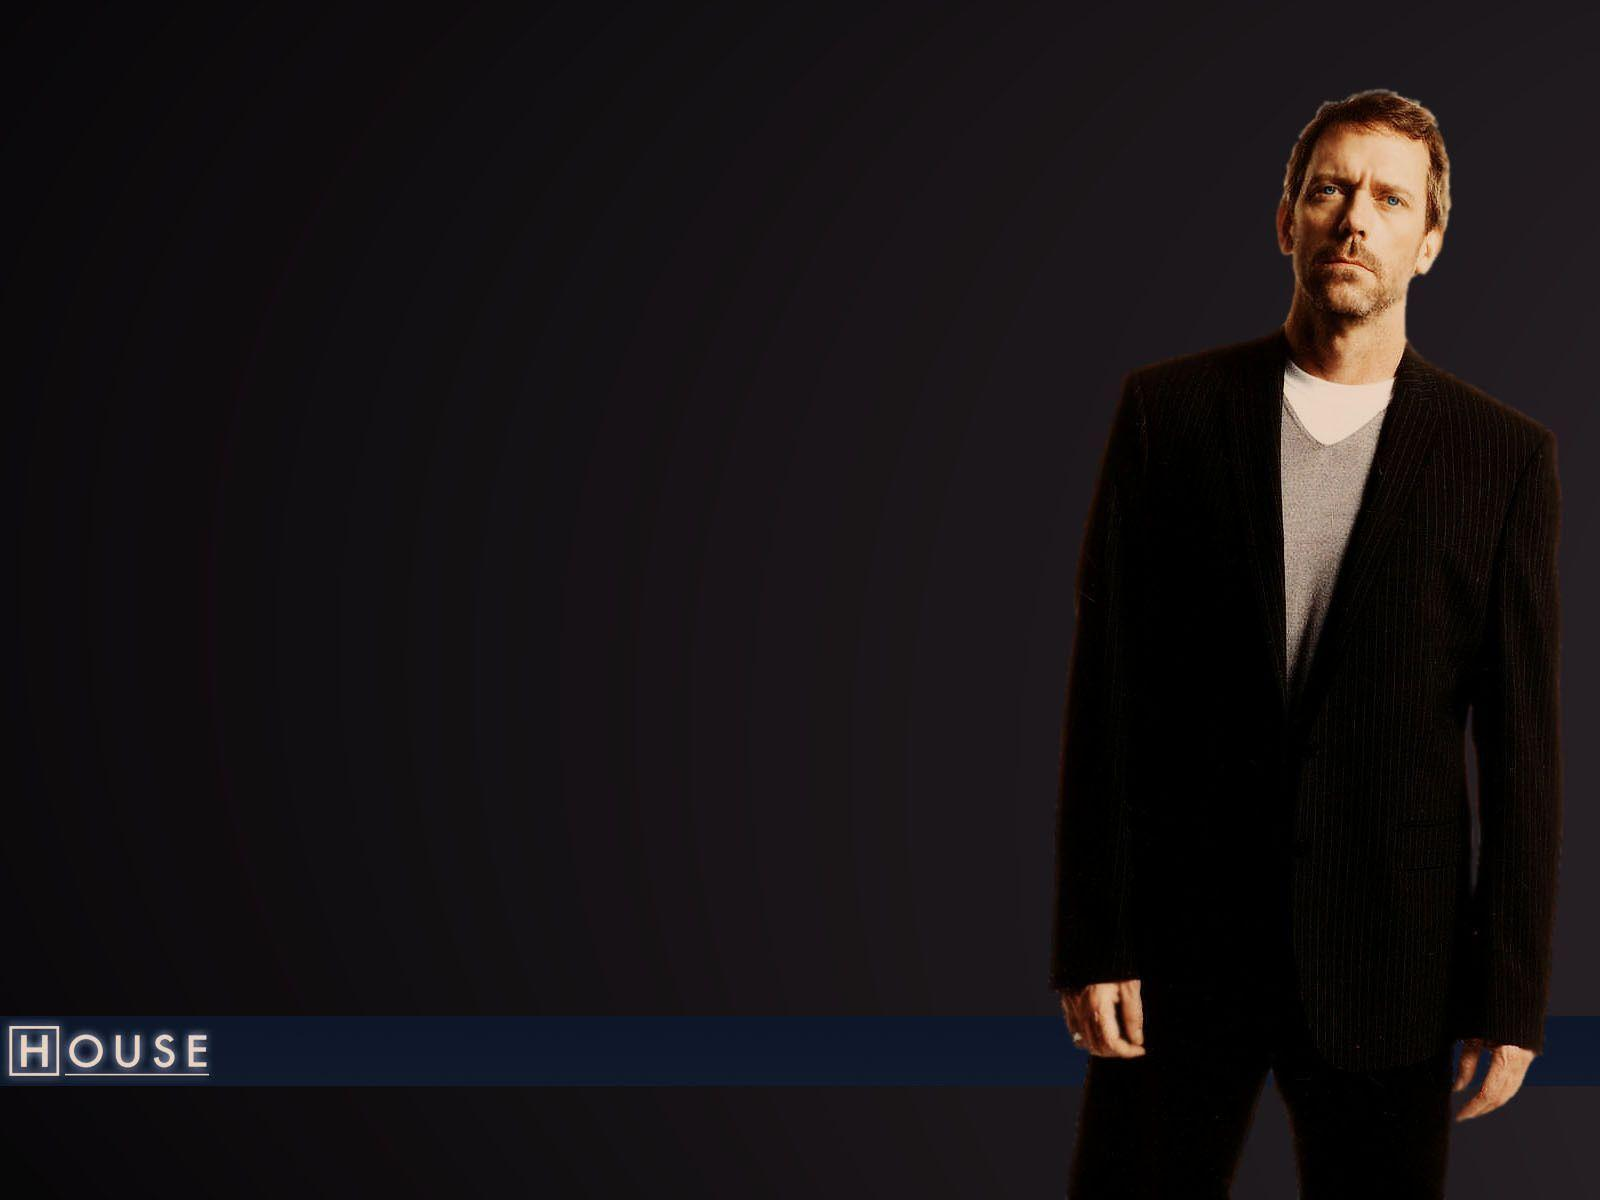 House md wallpaper - House M.D. Wallpaper (2662605) - Fanpop